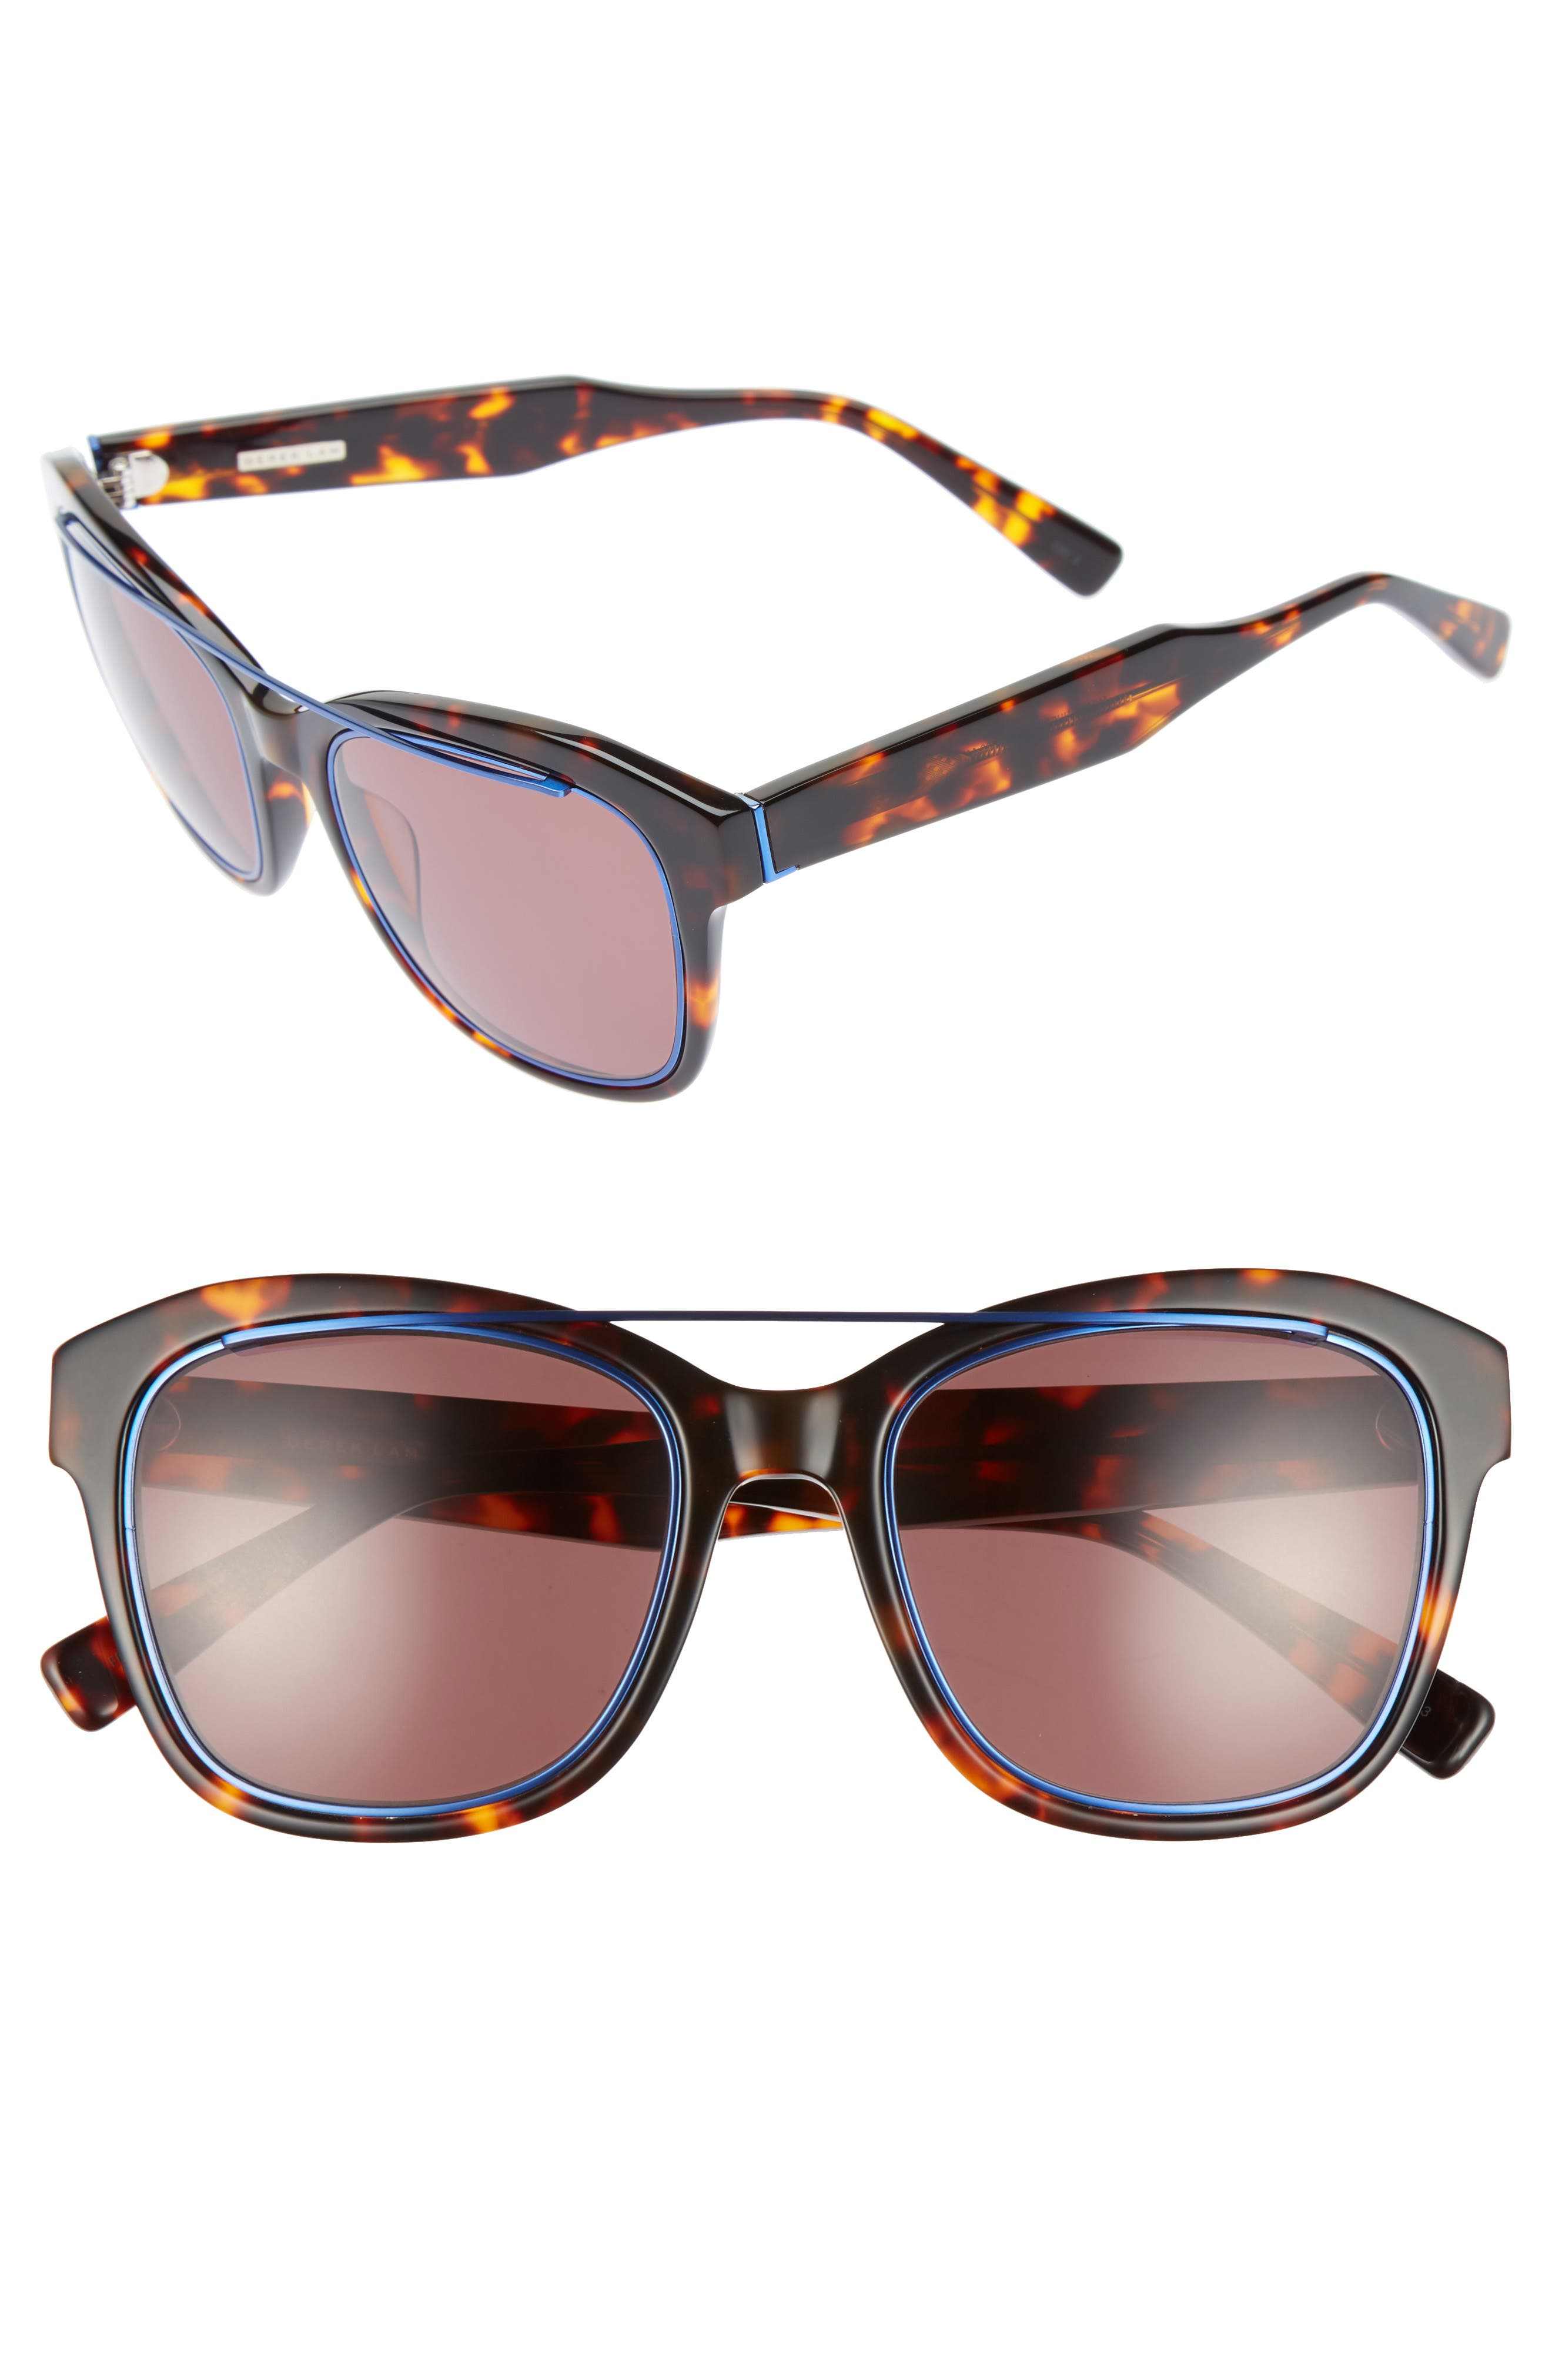 Hudson 52mm Gradient Sunglasses,                             Main thumbnail 1, color,                             HAVANA TORTOISE